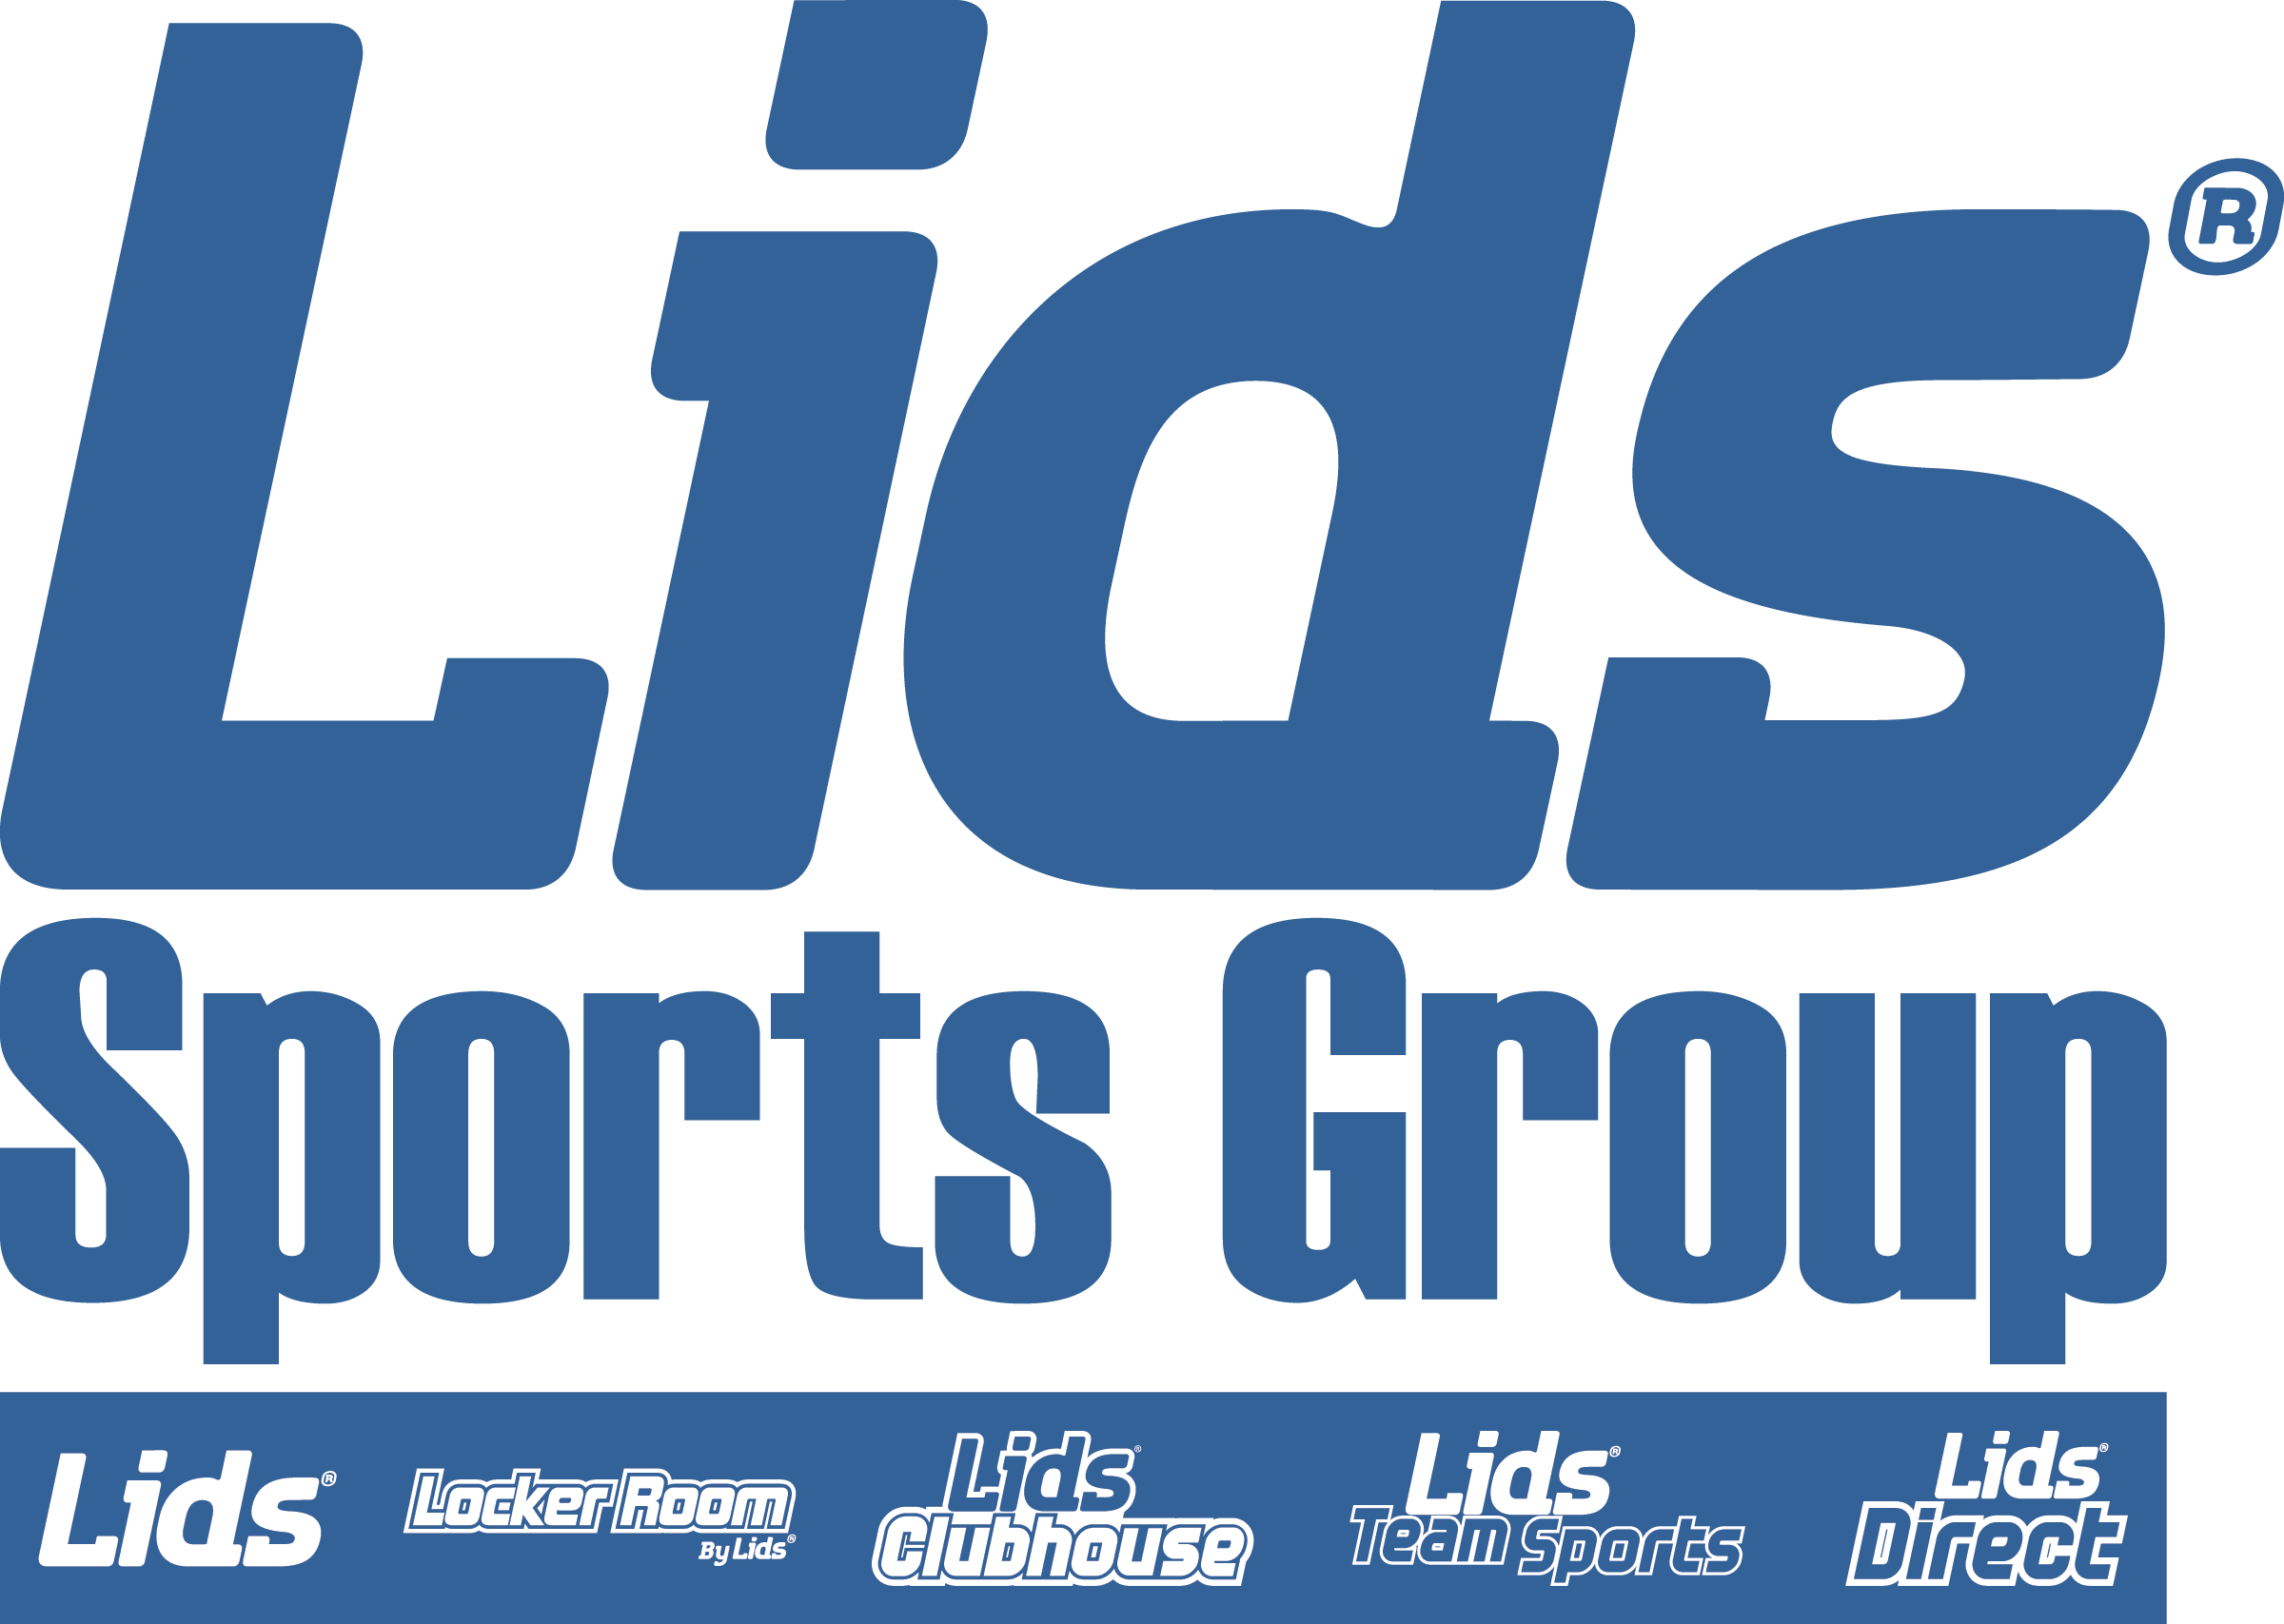 LIDS Sports Group